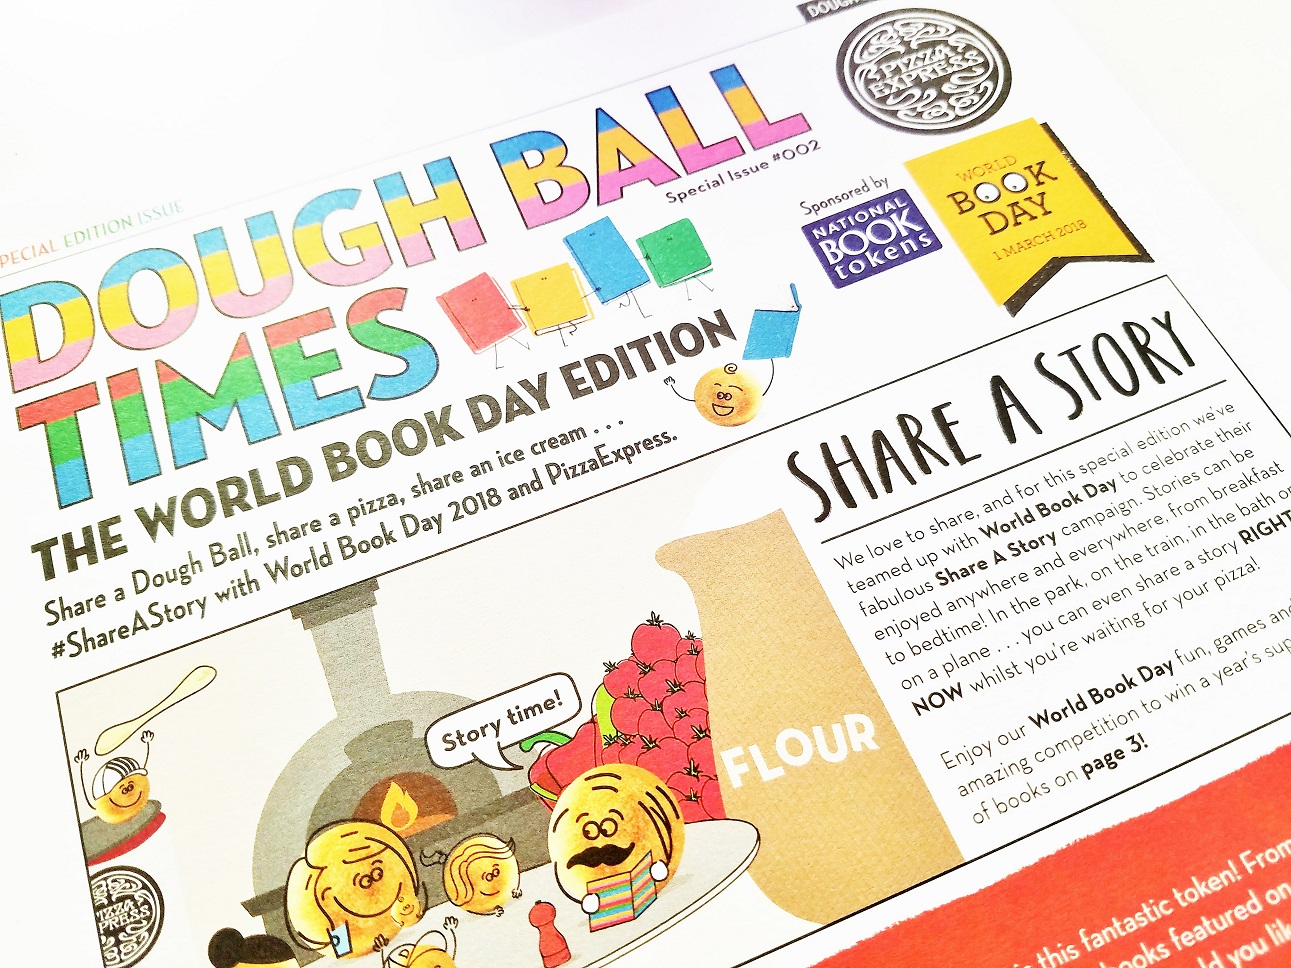 Dough Ball Times World Book Day Edition at Pizza Express - storytelling is fun